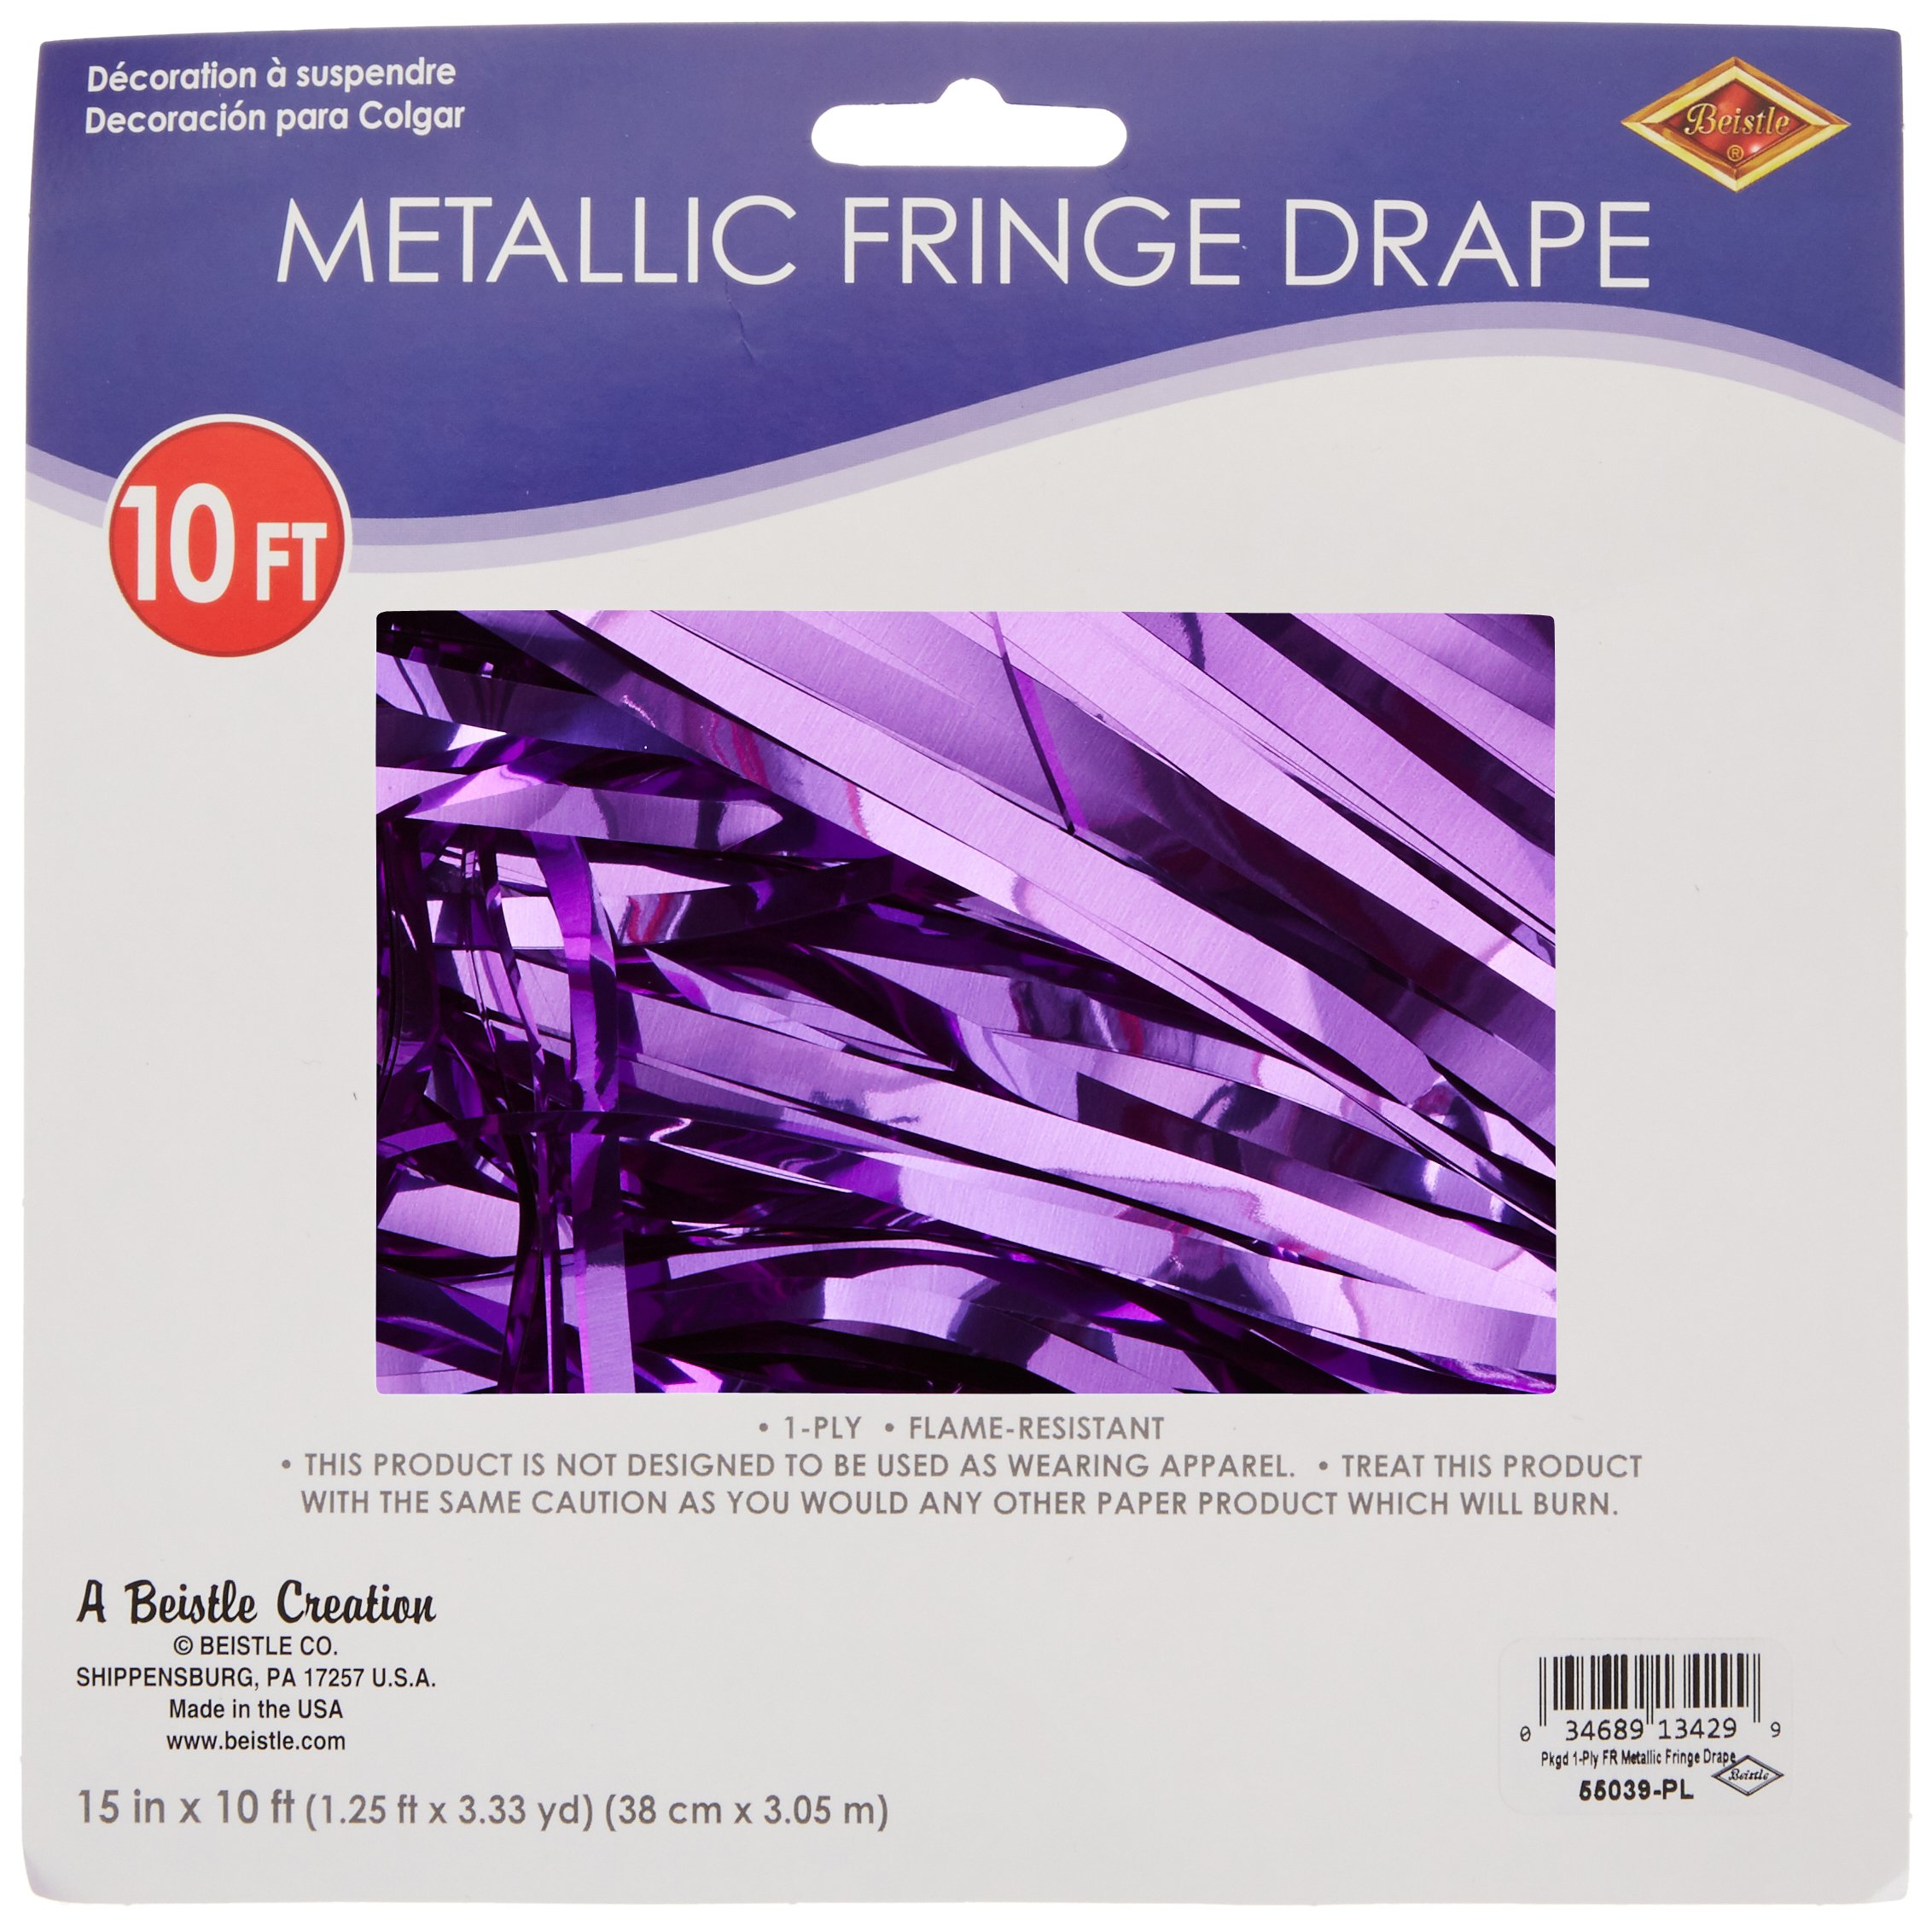 Pkgd 1-Ply FR Metallic Fringe Drape (purple) Party Accessory  (1 count) (1/Pkg)